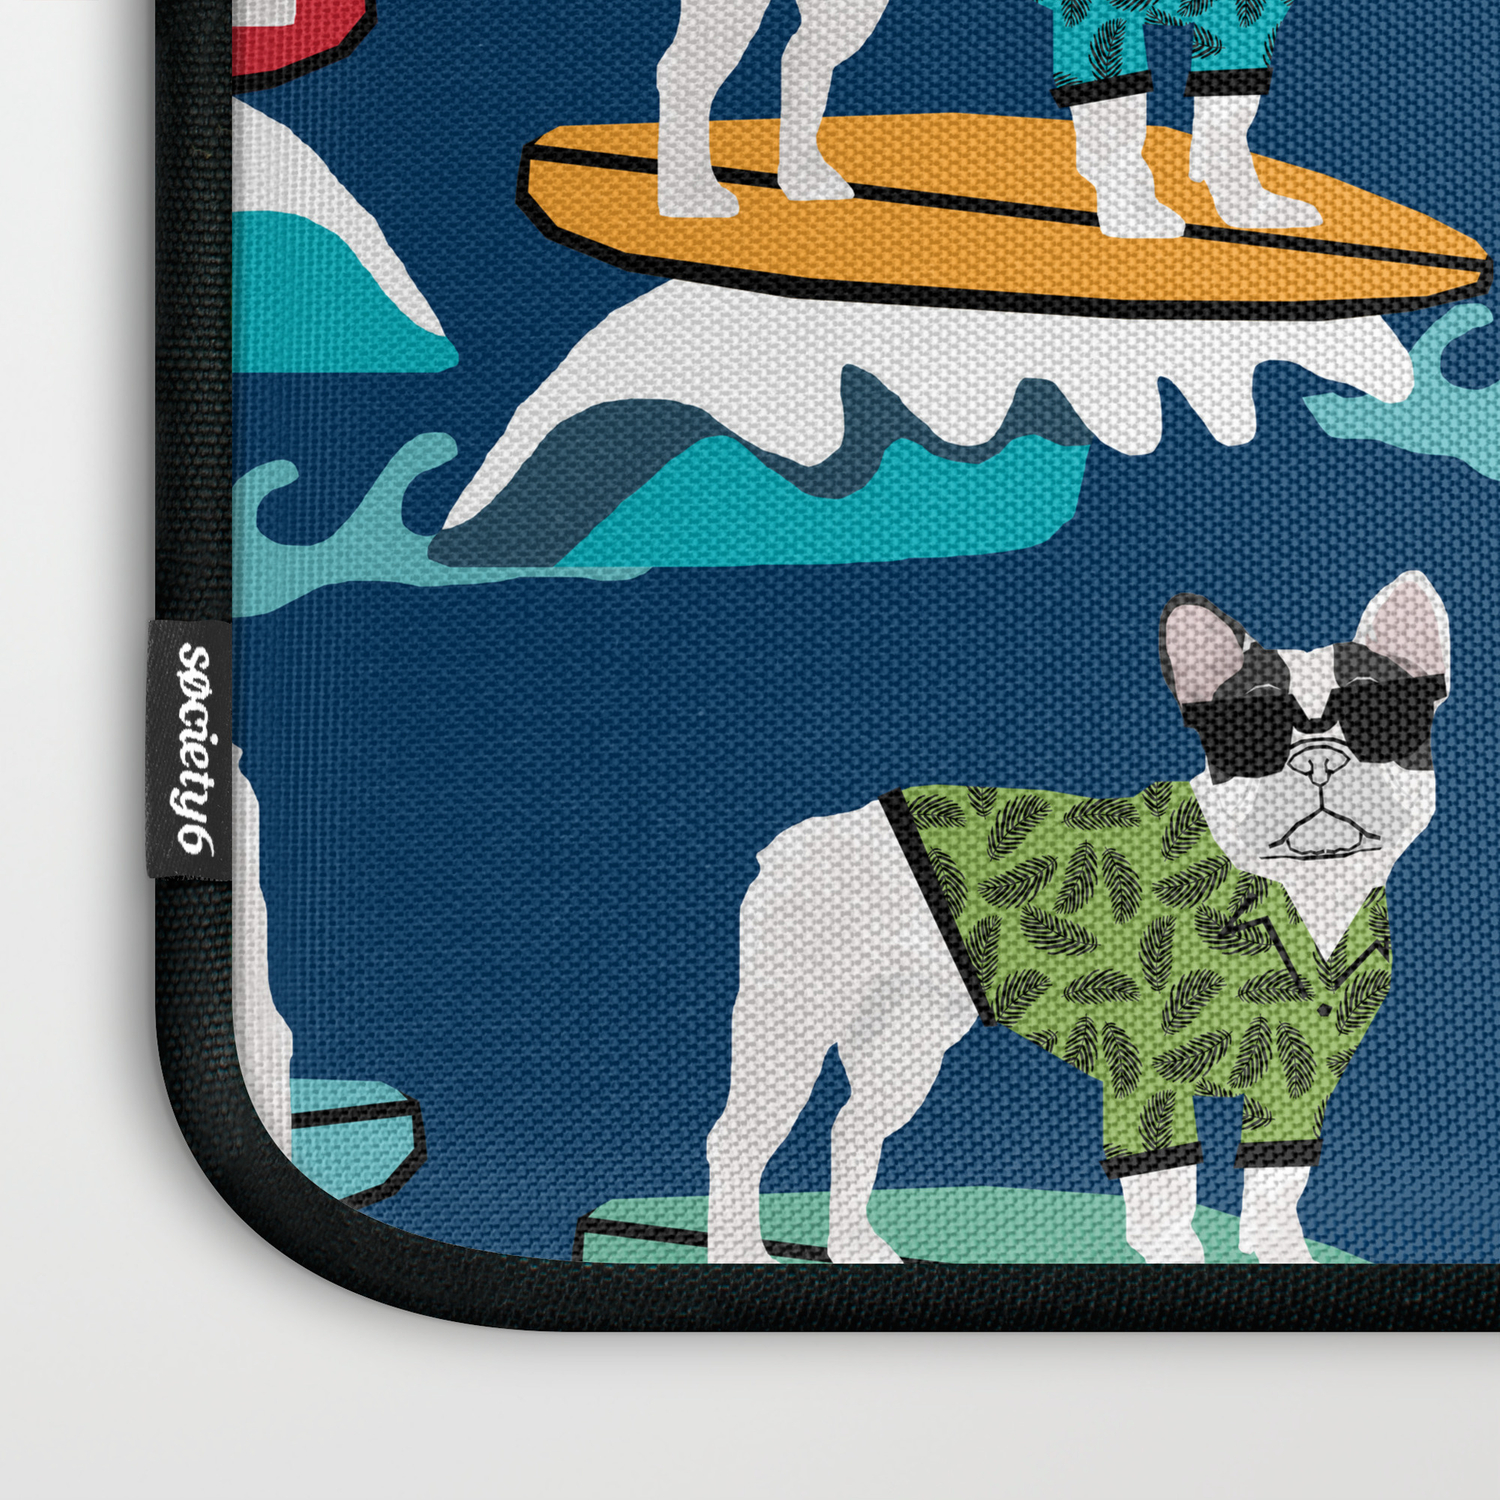 760d18bcc32d French Bulldog surfing pattern Laptop Sleeve by foreverfrenchies   Society6